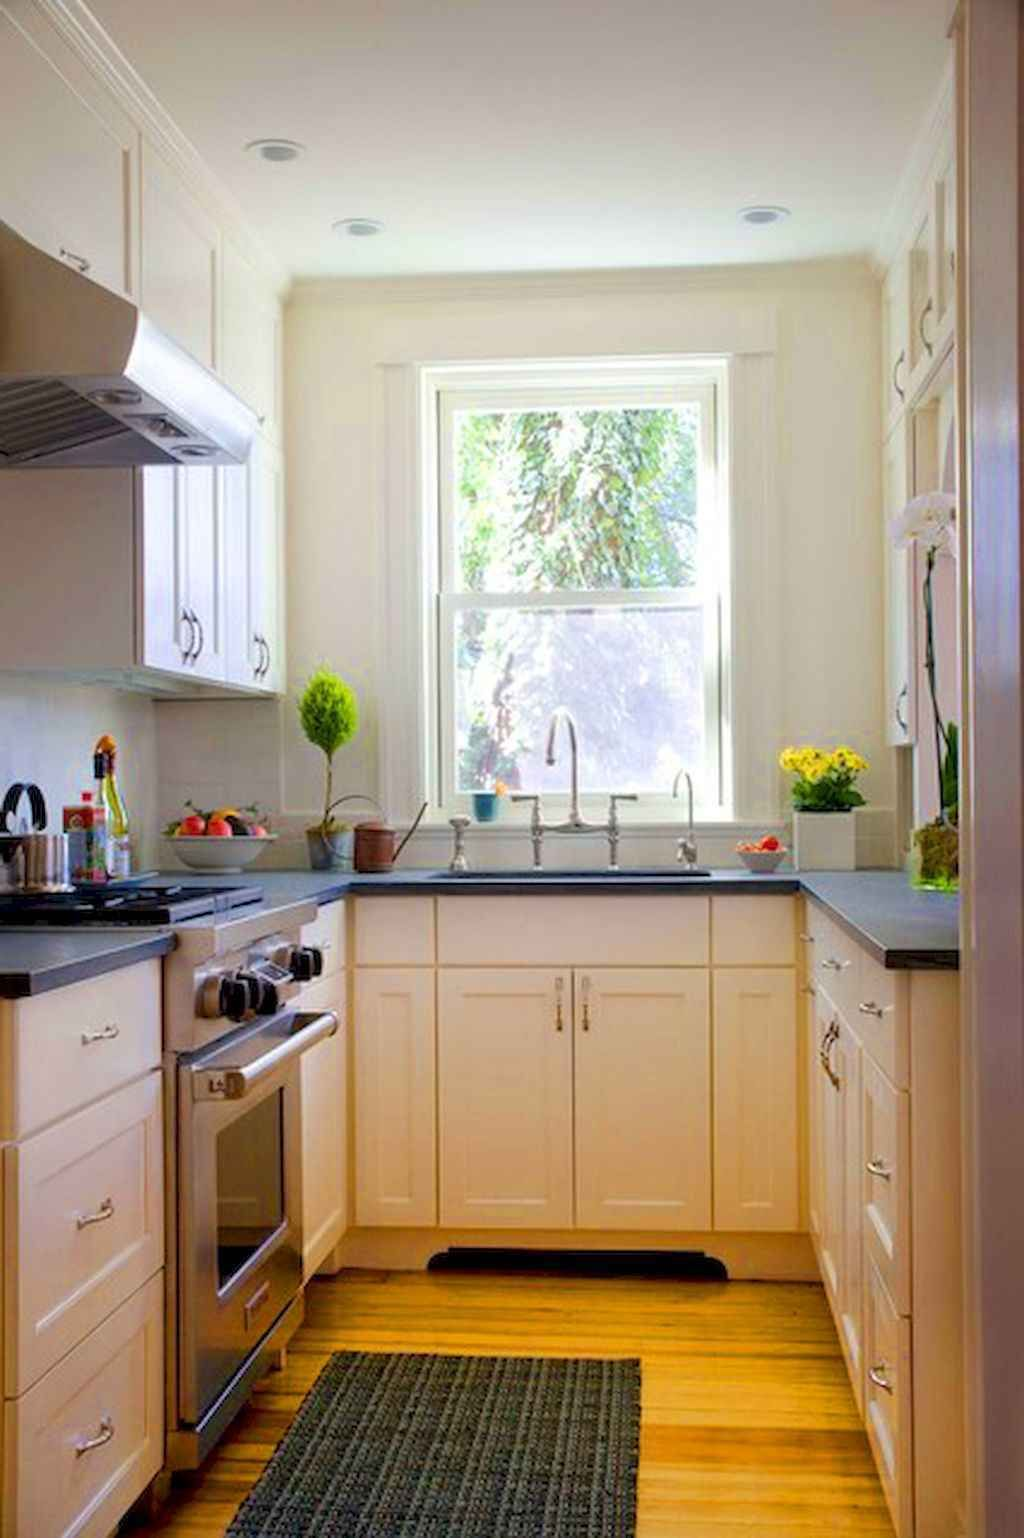 120 Beautiful Small Kitchen Design Ideas And Remodel To Inspire